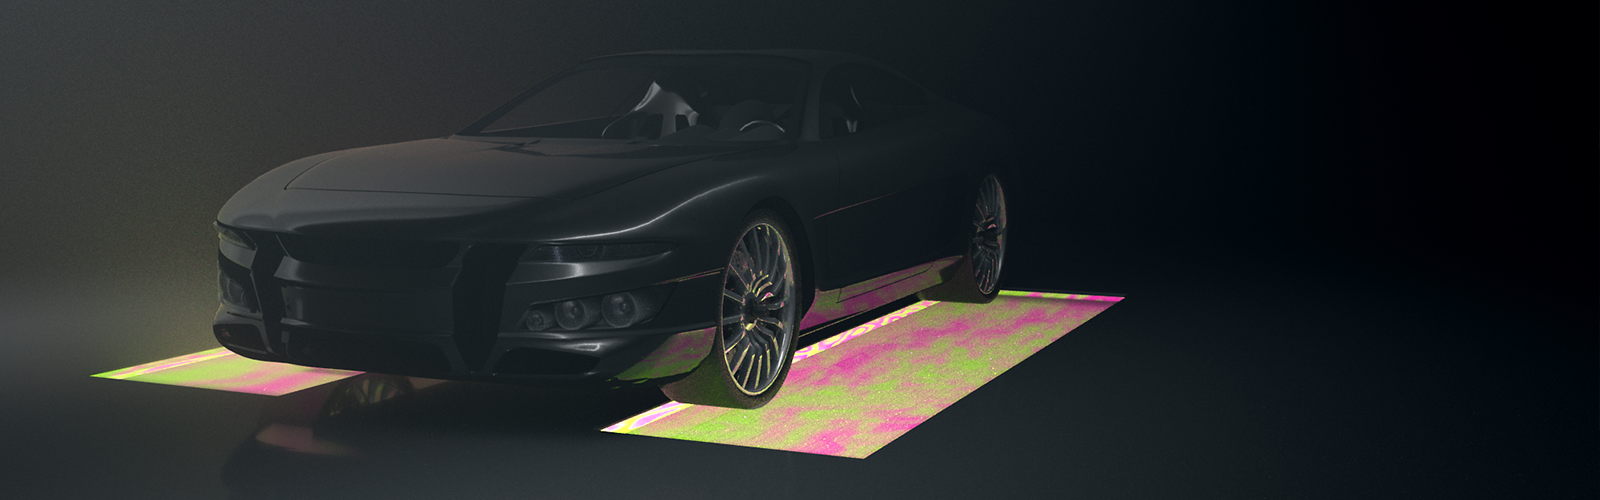 LED Boden Automotive Rendering